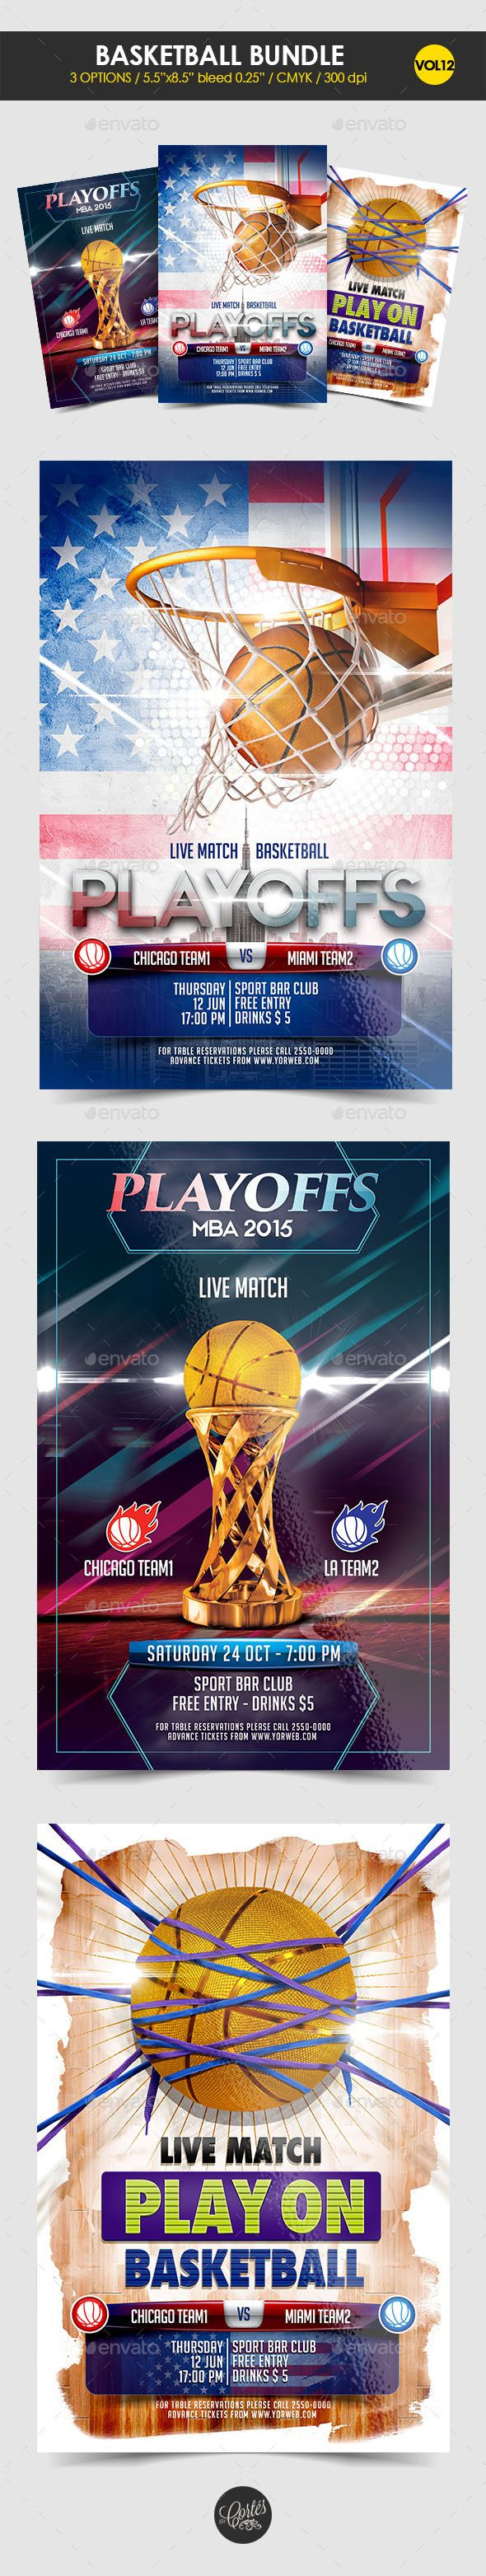 Basketball Flyer Bundle Vol 12 By Srcortes Features Size 5585 With 025 BleedMode CMYKFiles Included 3 PSD 300 Dpi Help FileFonts Used CWG